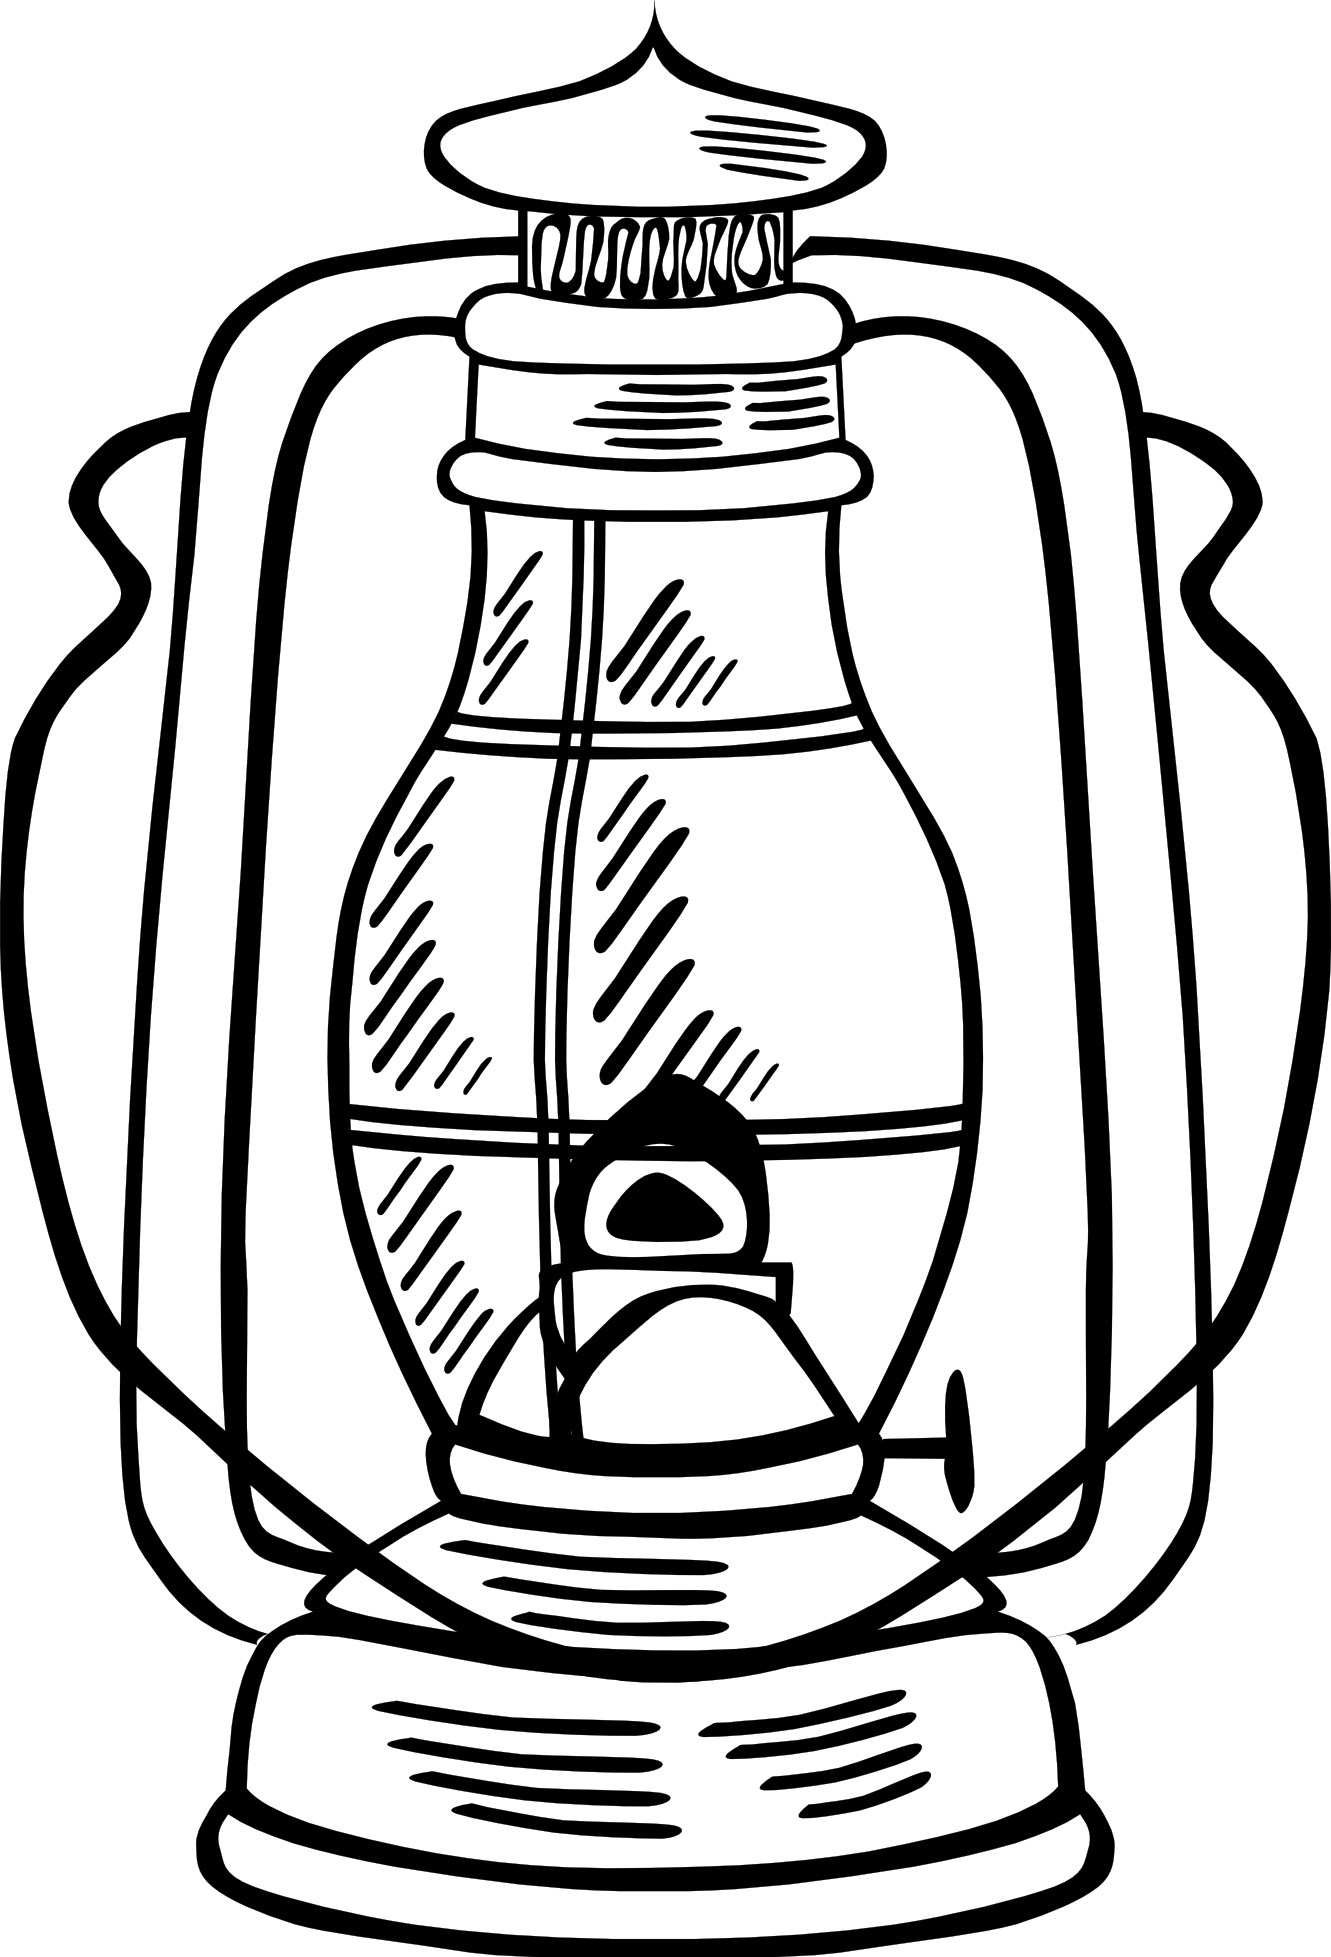 Oil Lamp Clipart Black And White | Clipart Panda - Free Clipart Images